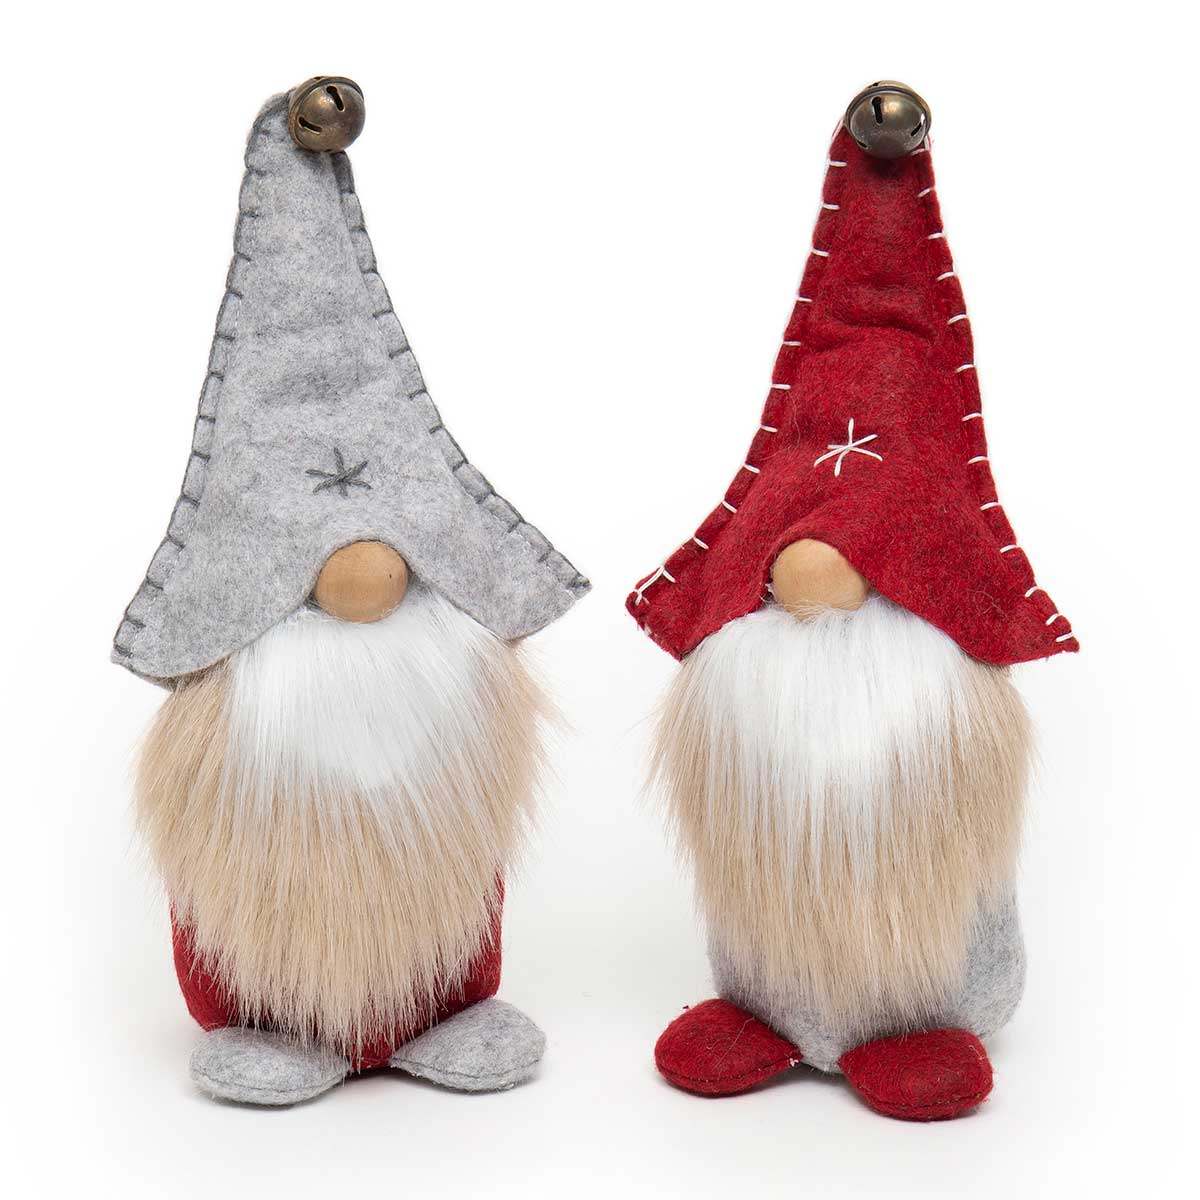 TOMMY TWO-TONE GNOME WITH BELL